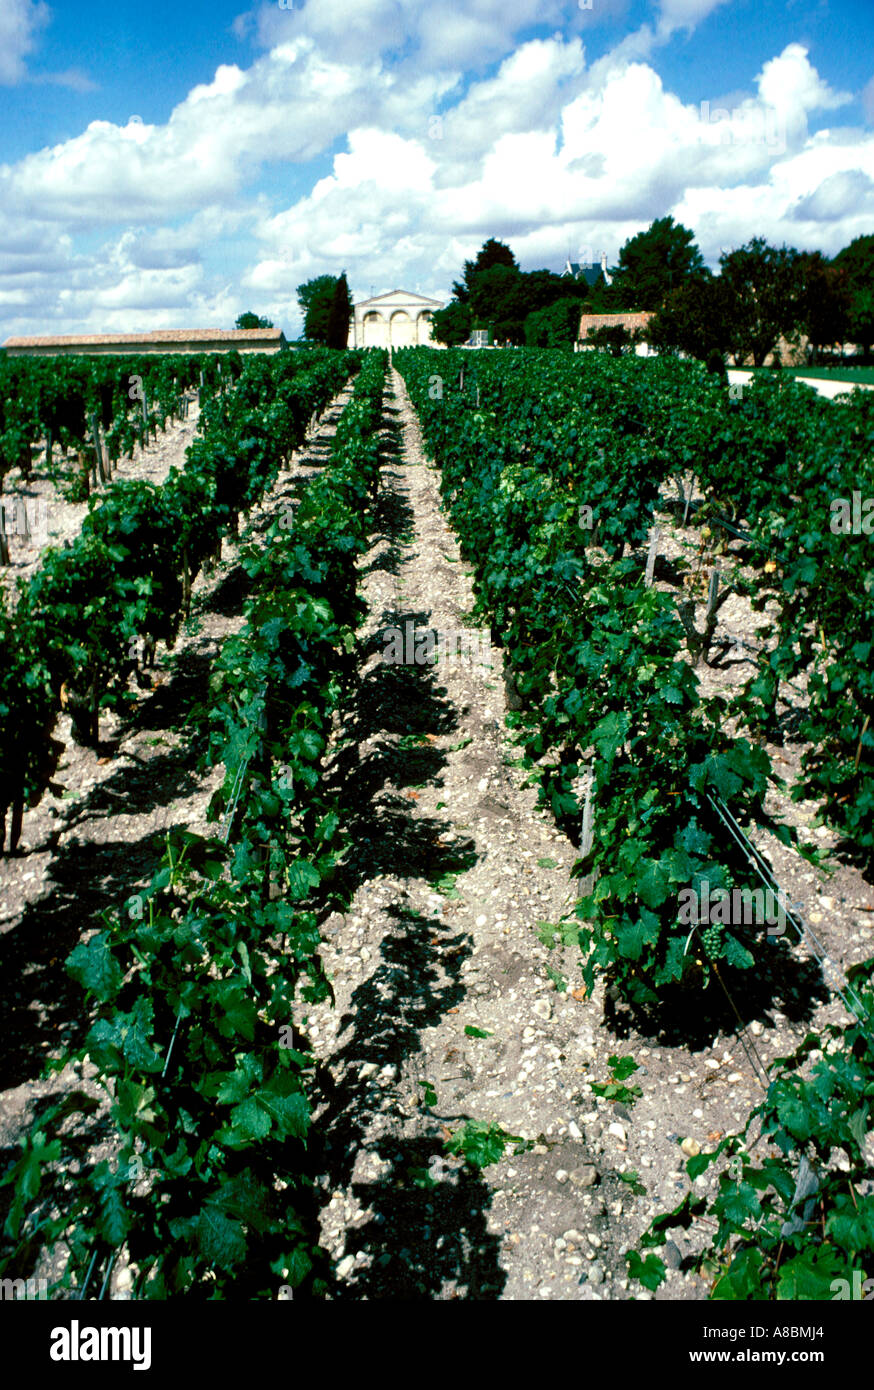 France Bordeaux Vines and museum at Chateau Mouton Rothschild - Stock Image